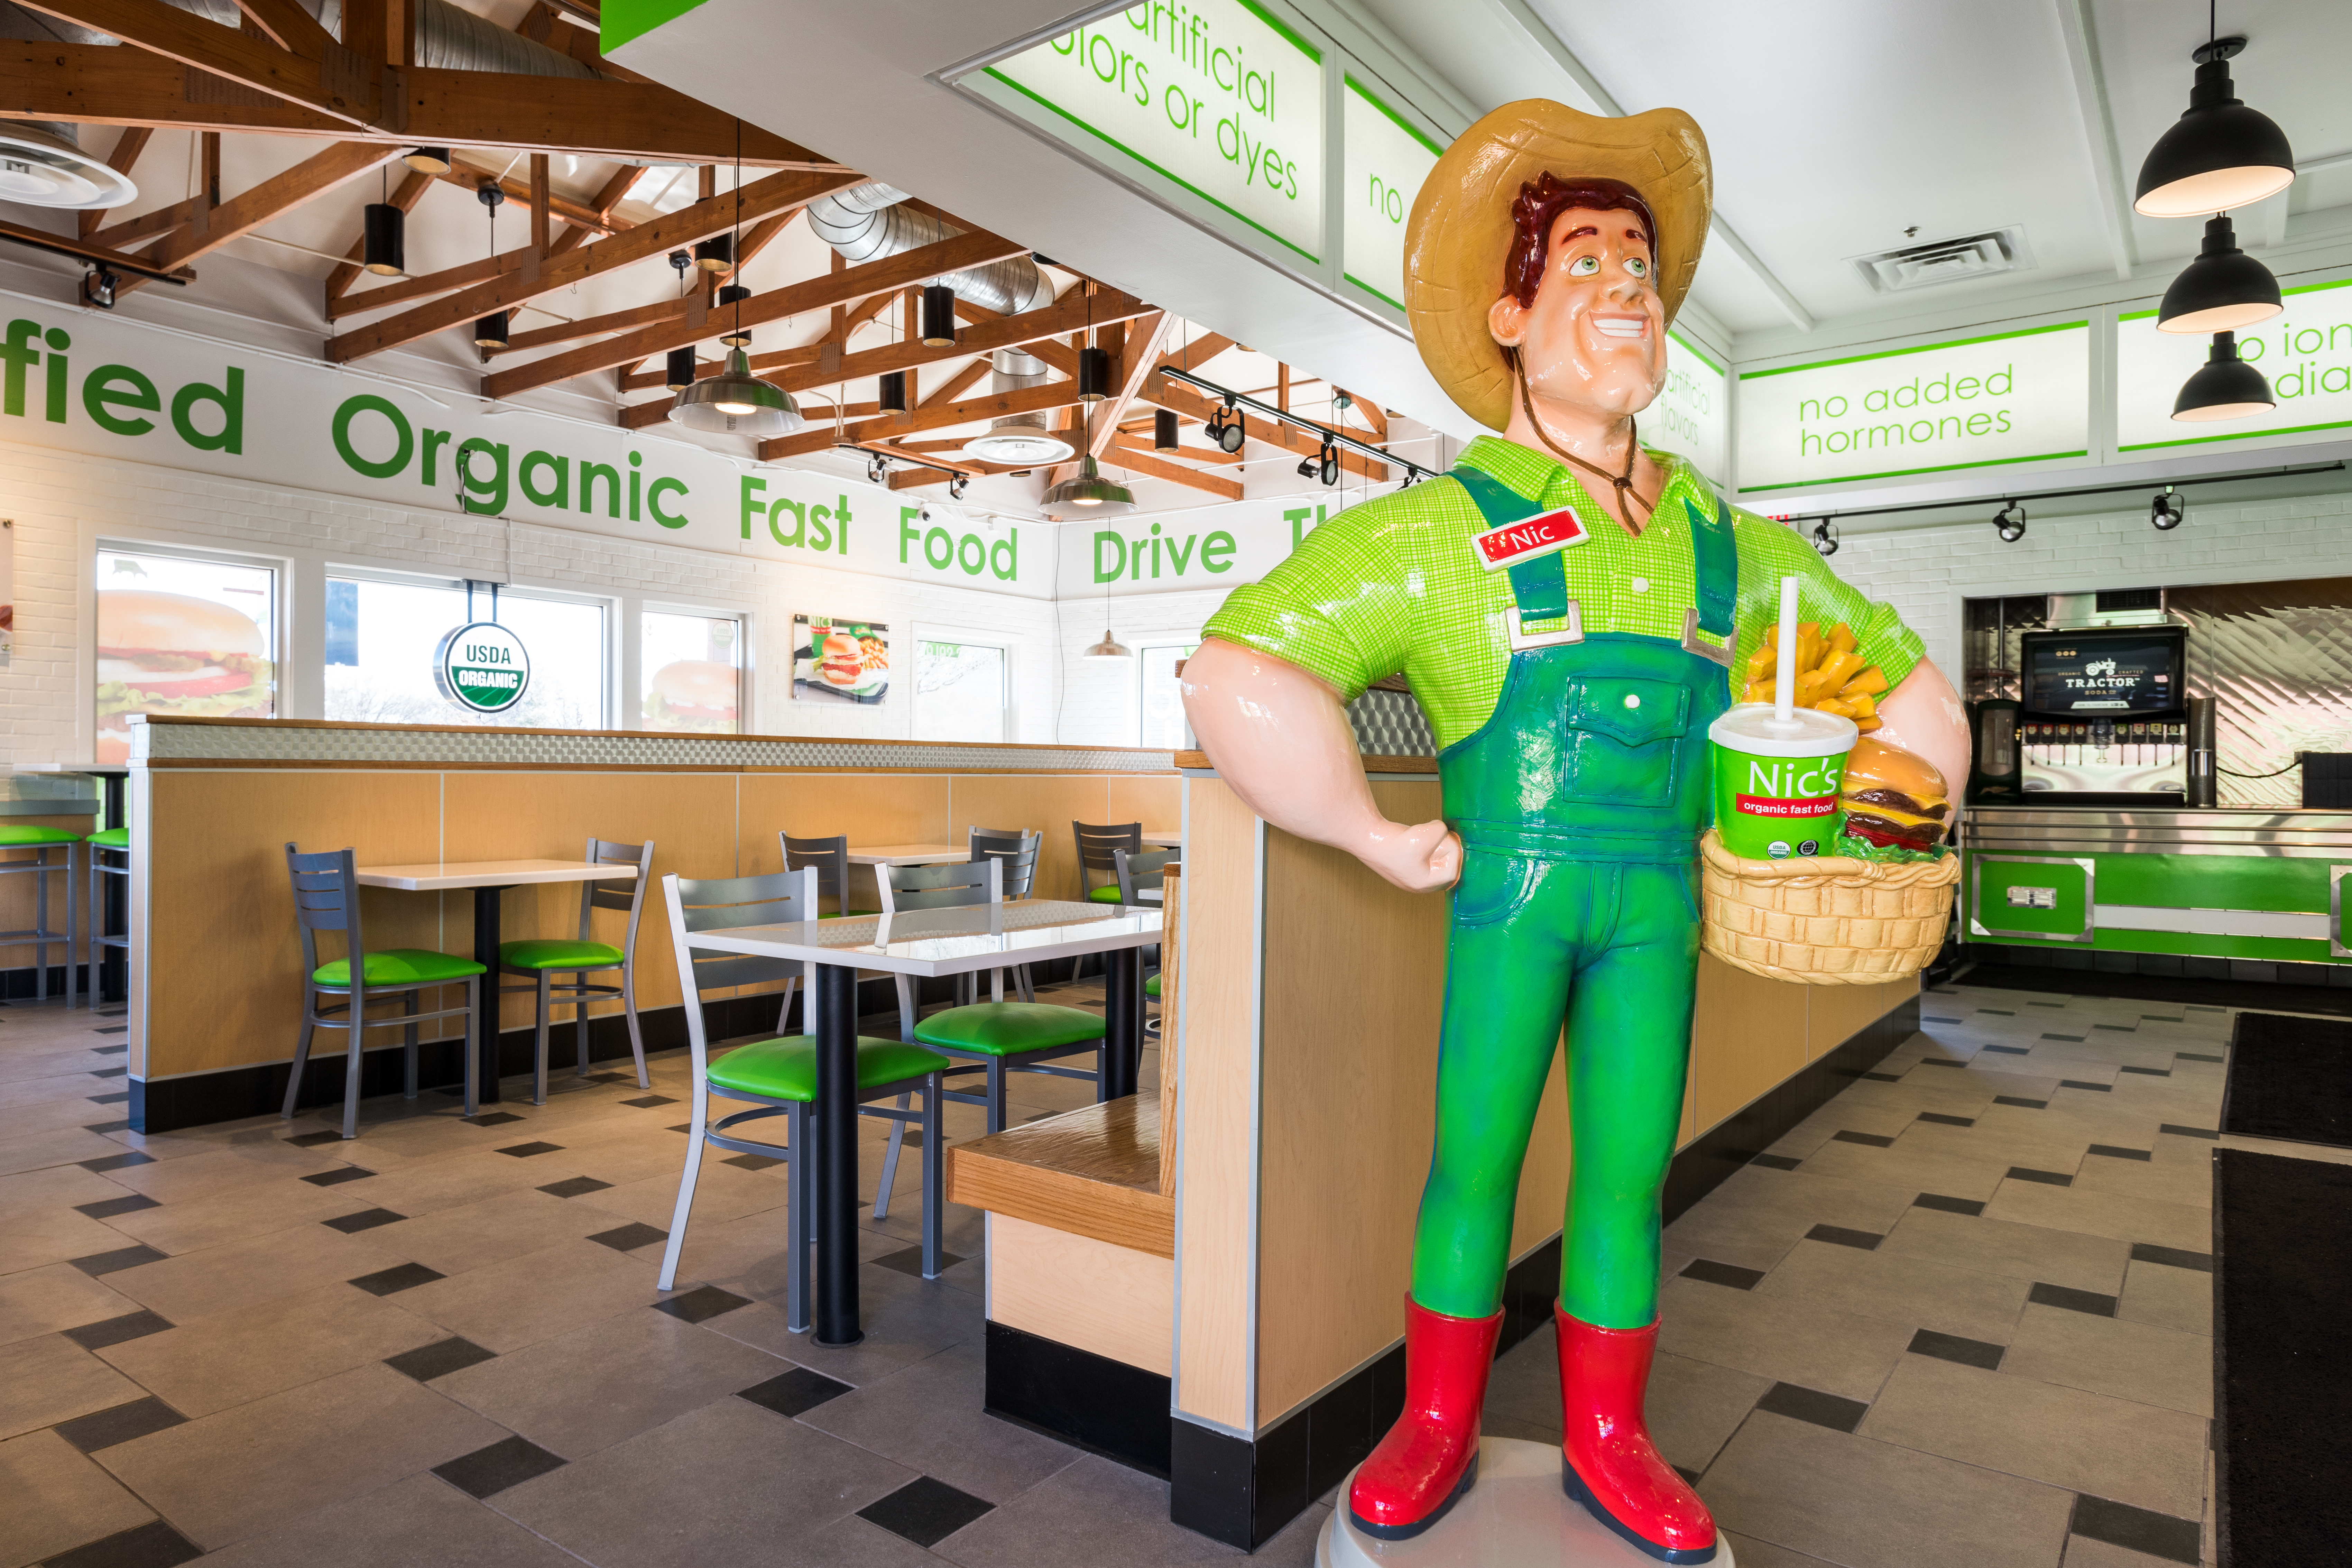 Chicago's First Organic Fast Food Chain Closes All Locations